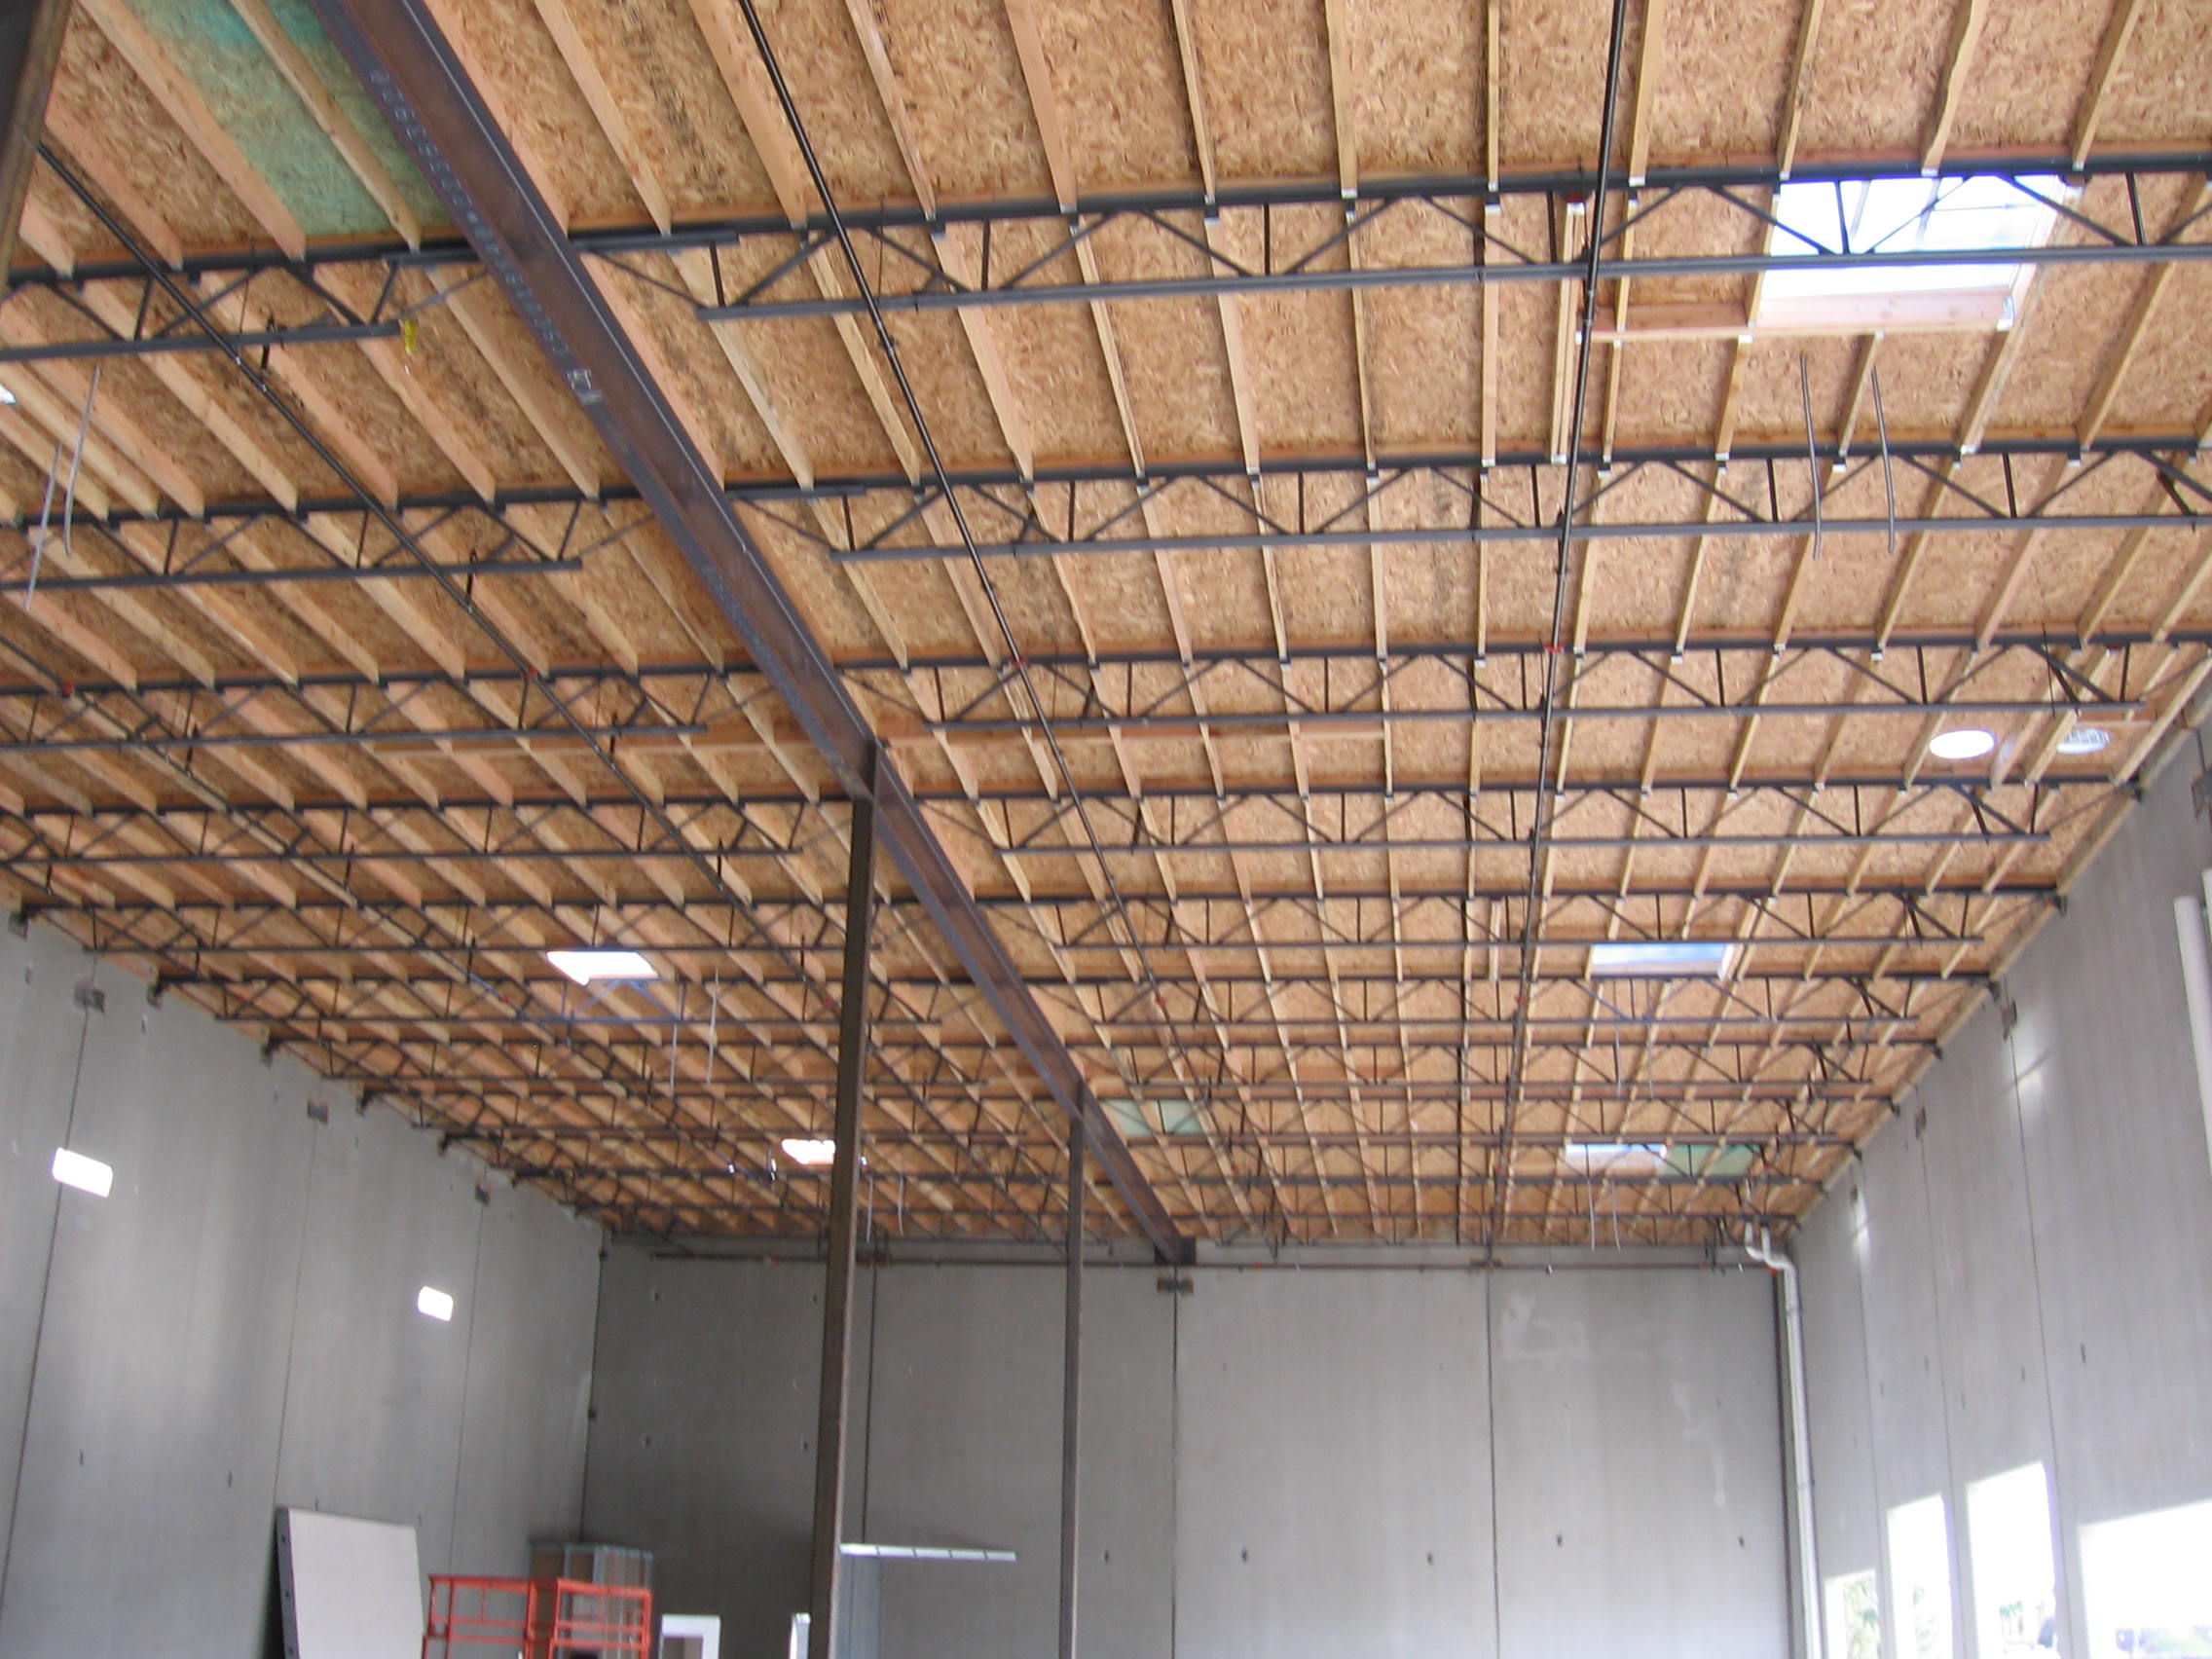 Panelized roof dangers for firefighters for Panelized building systems